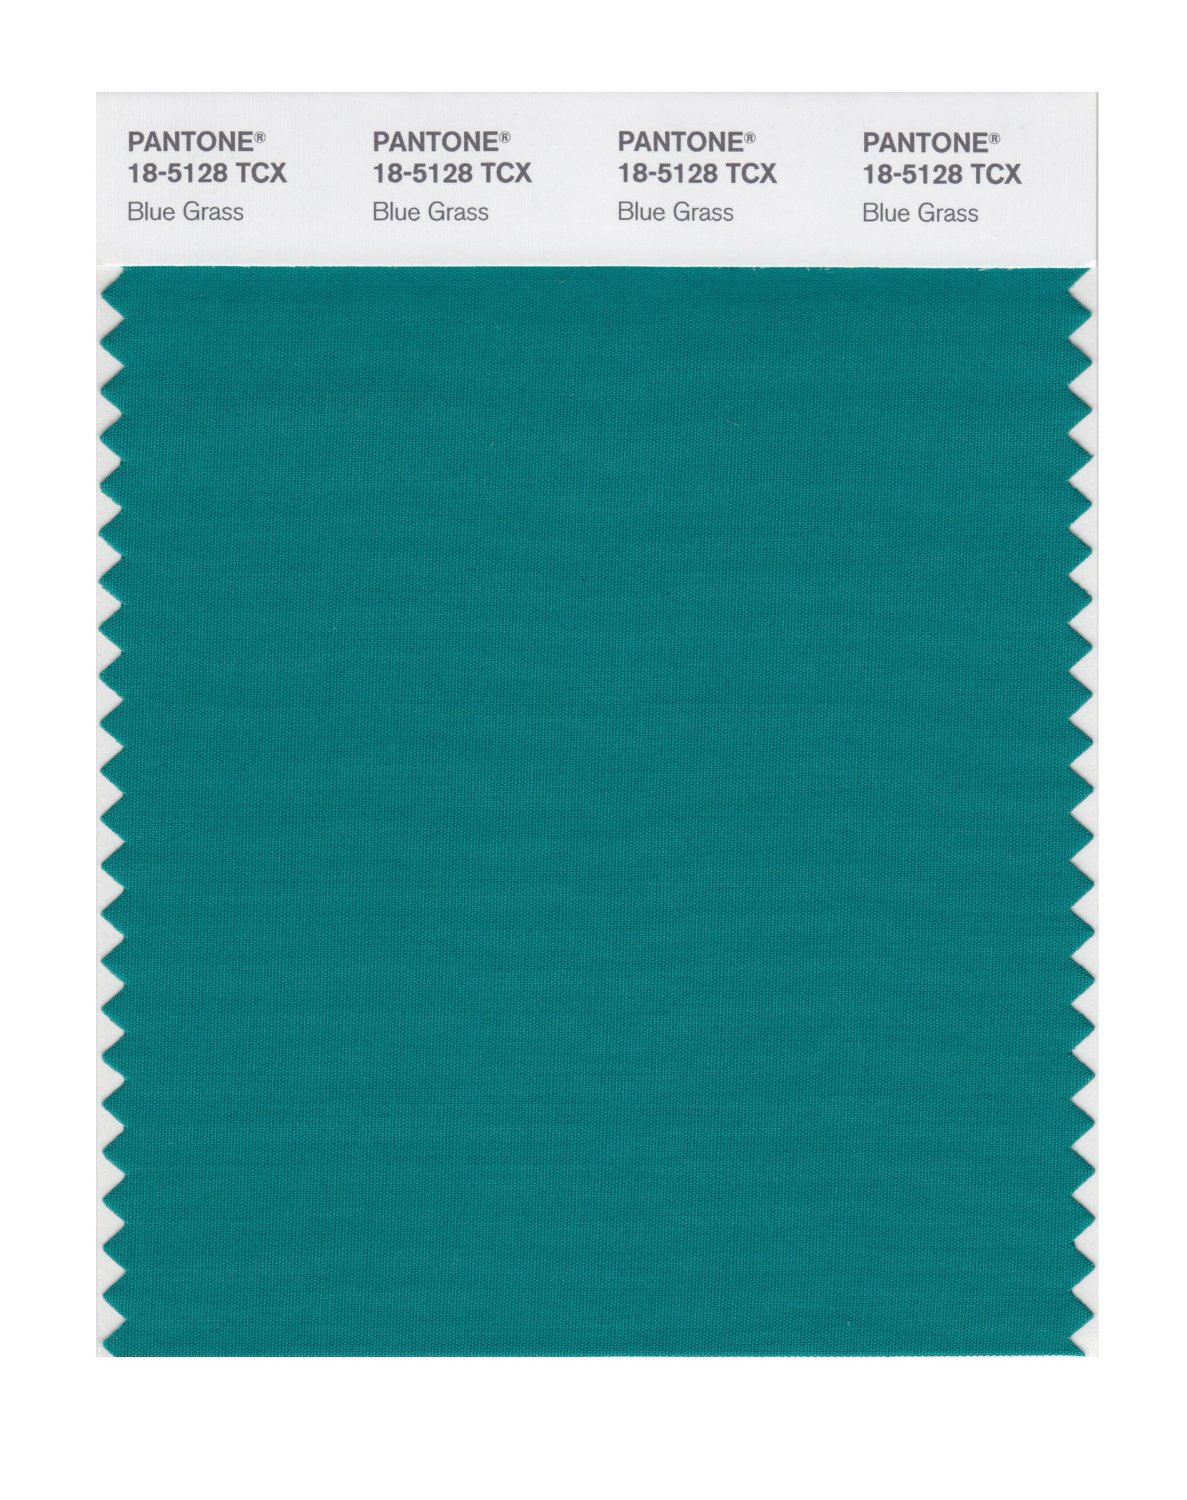 Pantone Smart Swatch 18-5128 Blue Grass